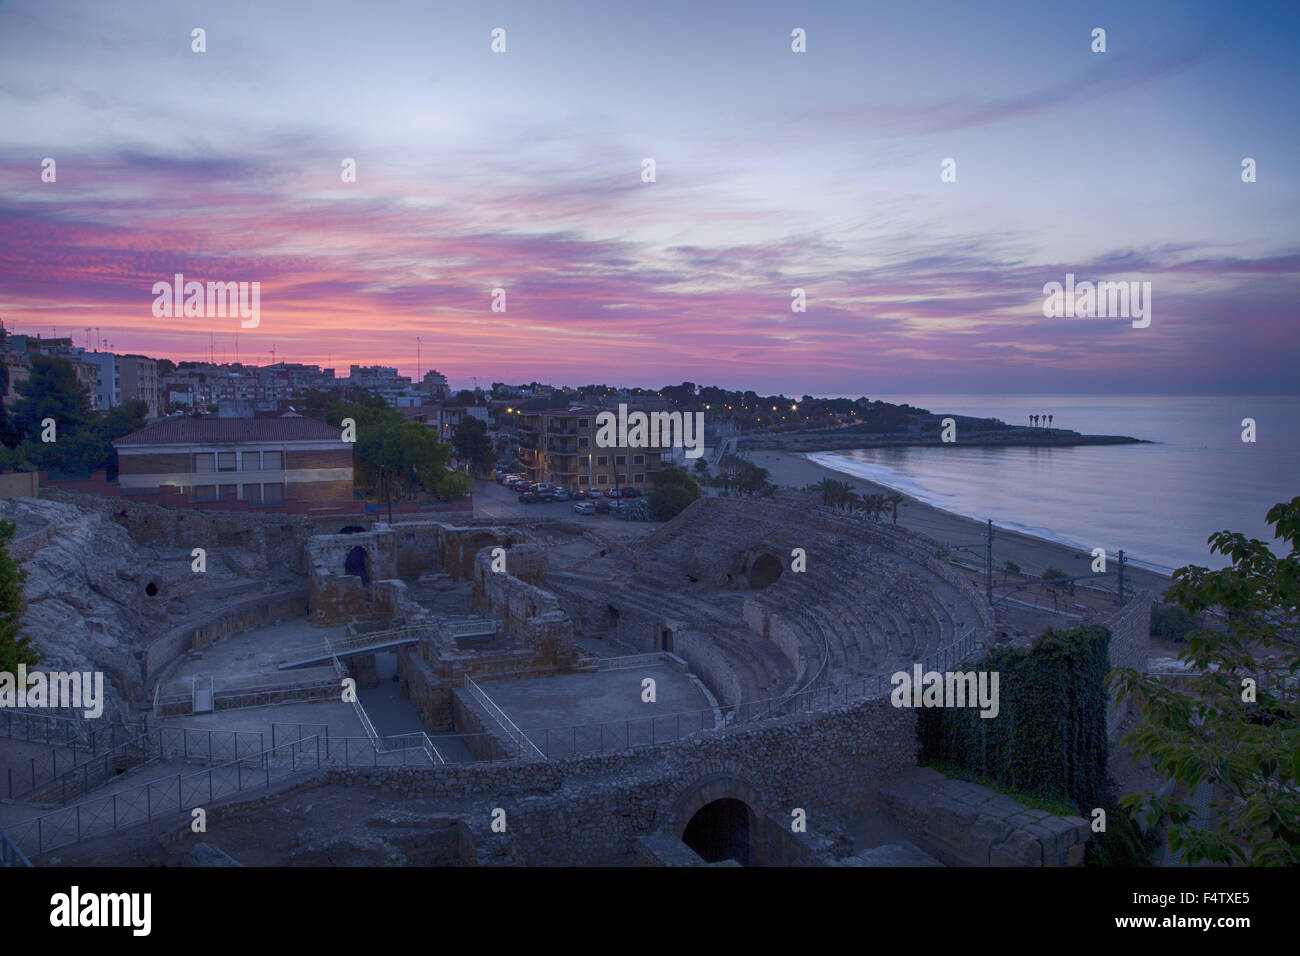 Sunrise from the high viewpoint over the historic Roman amphitheater, the UNESCO site in Tarragona Valencia Spain. - Stock Image